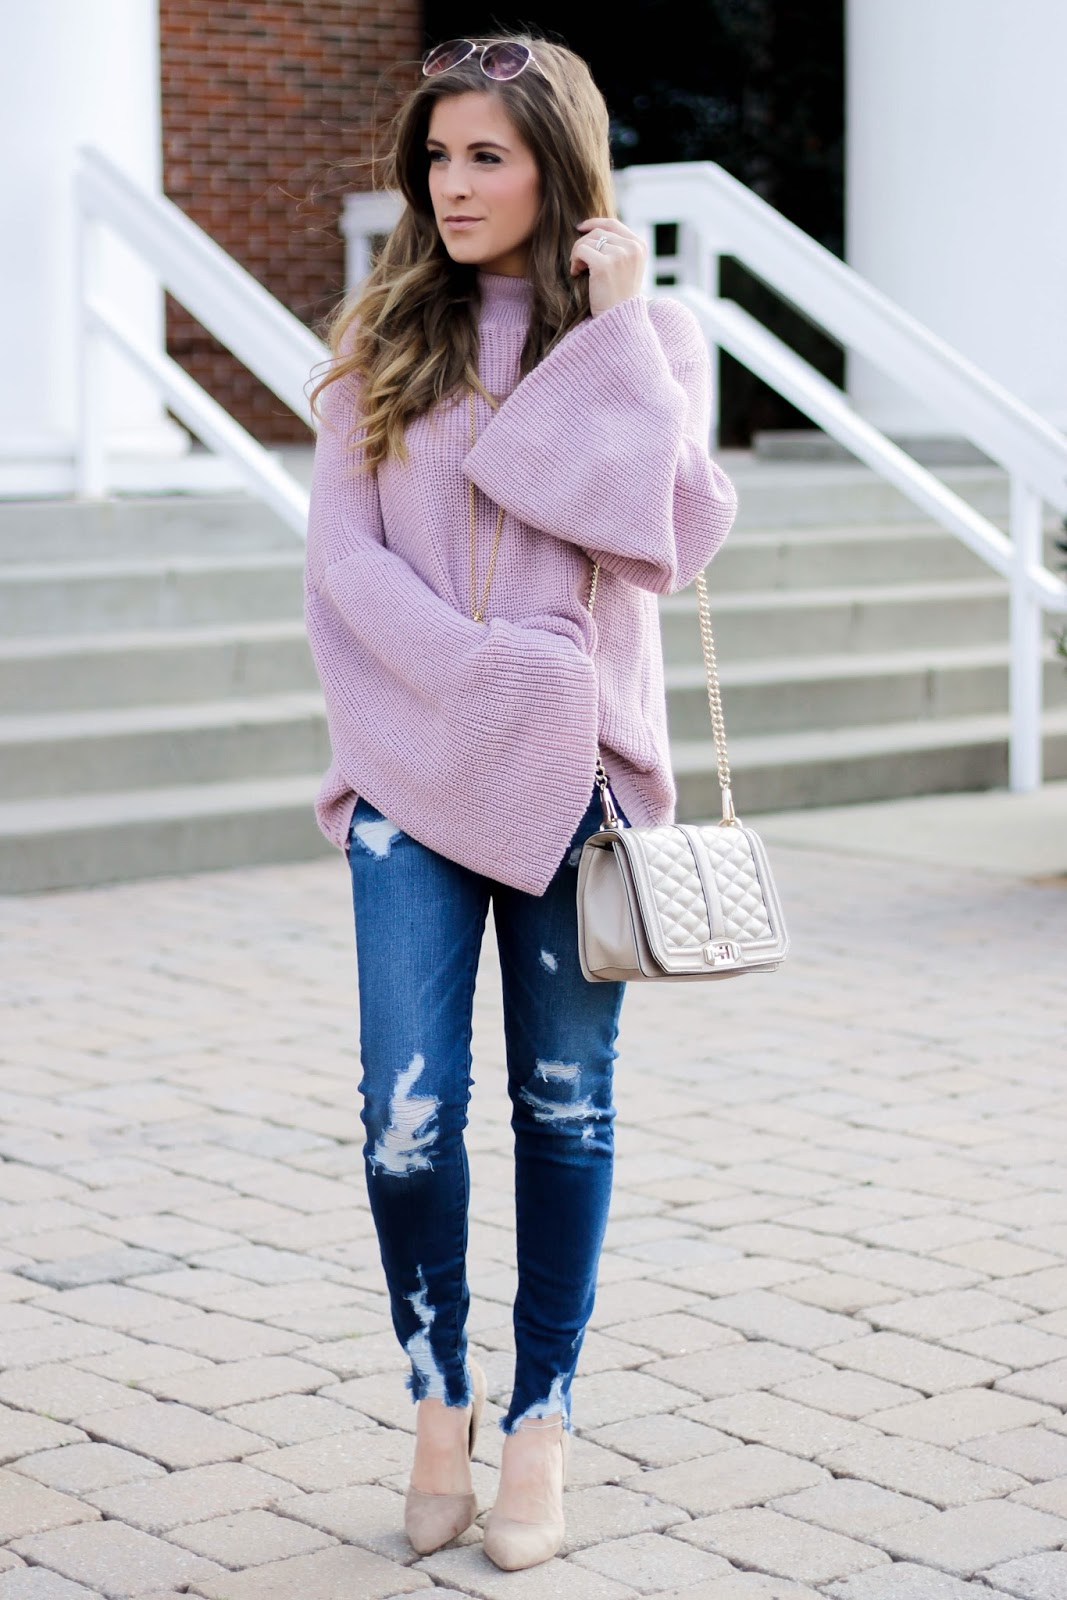 Oversized Bell Sleeve Sweater The Dainty Darling